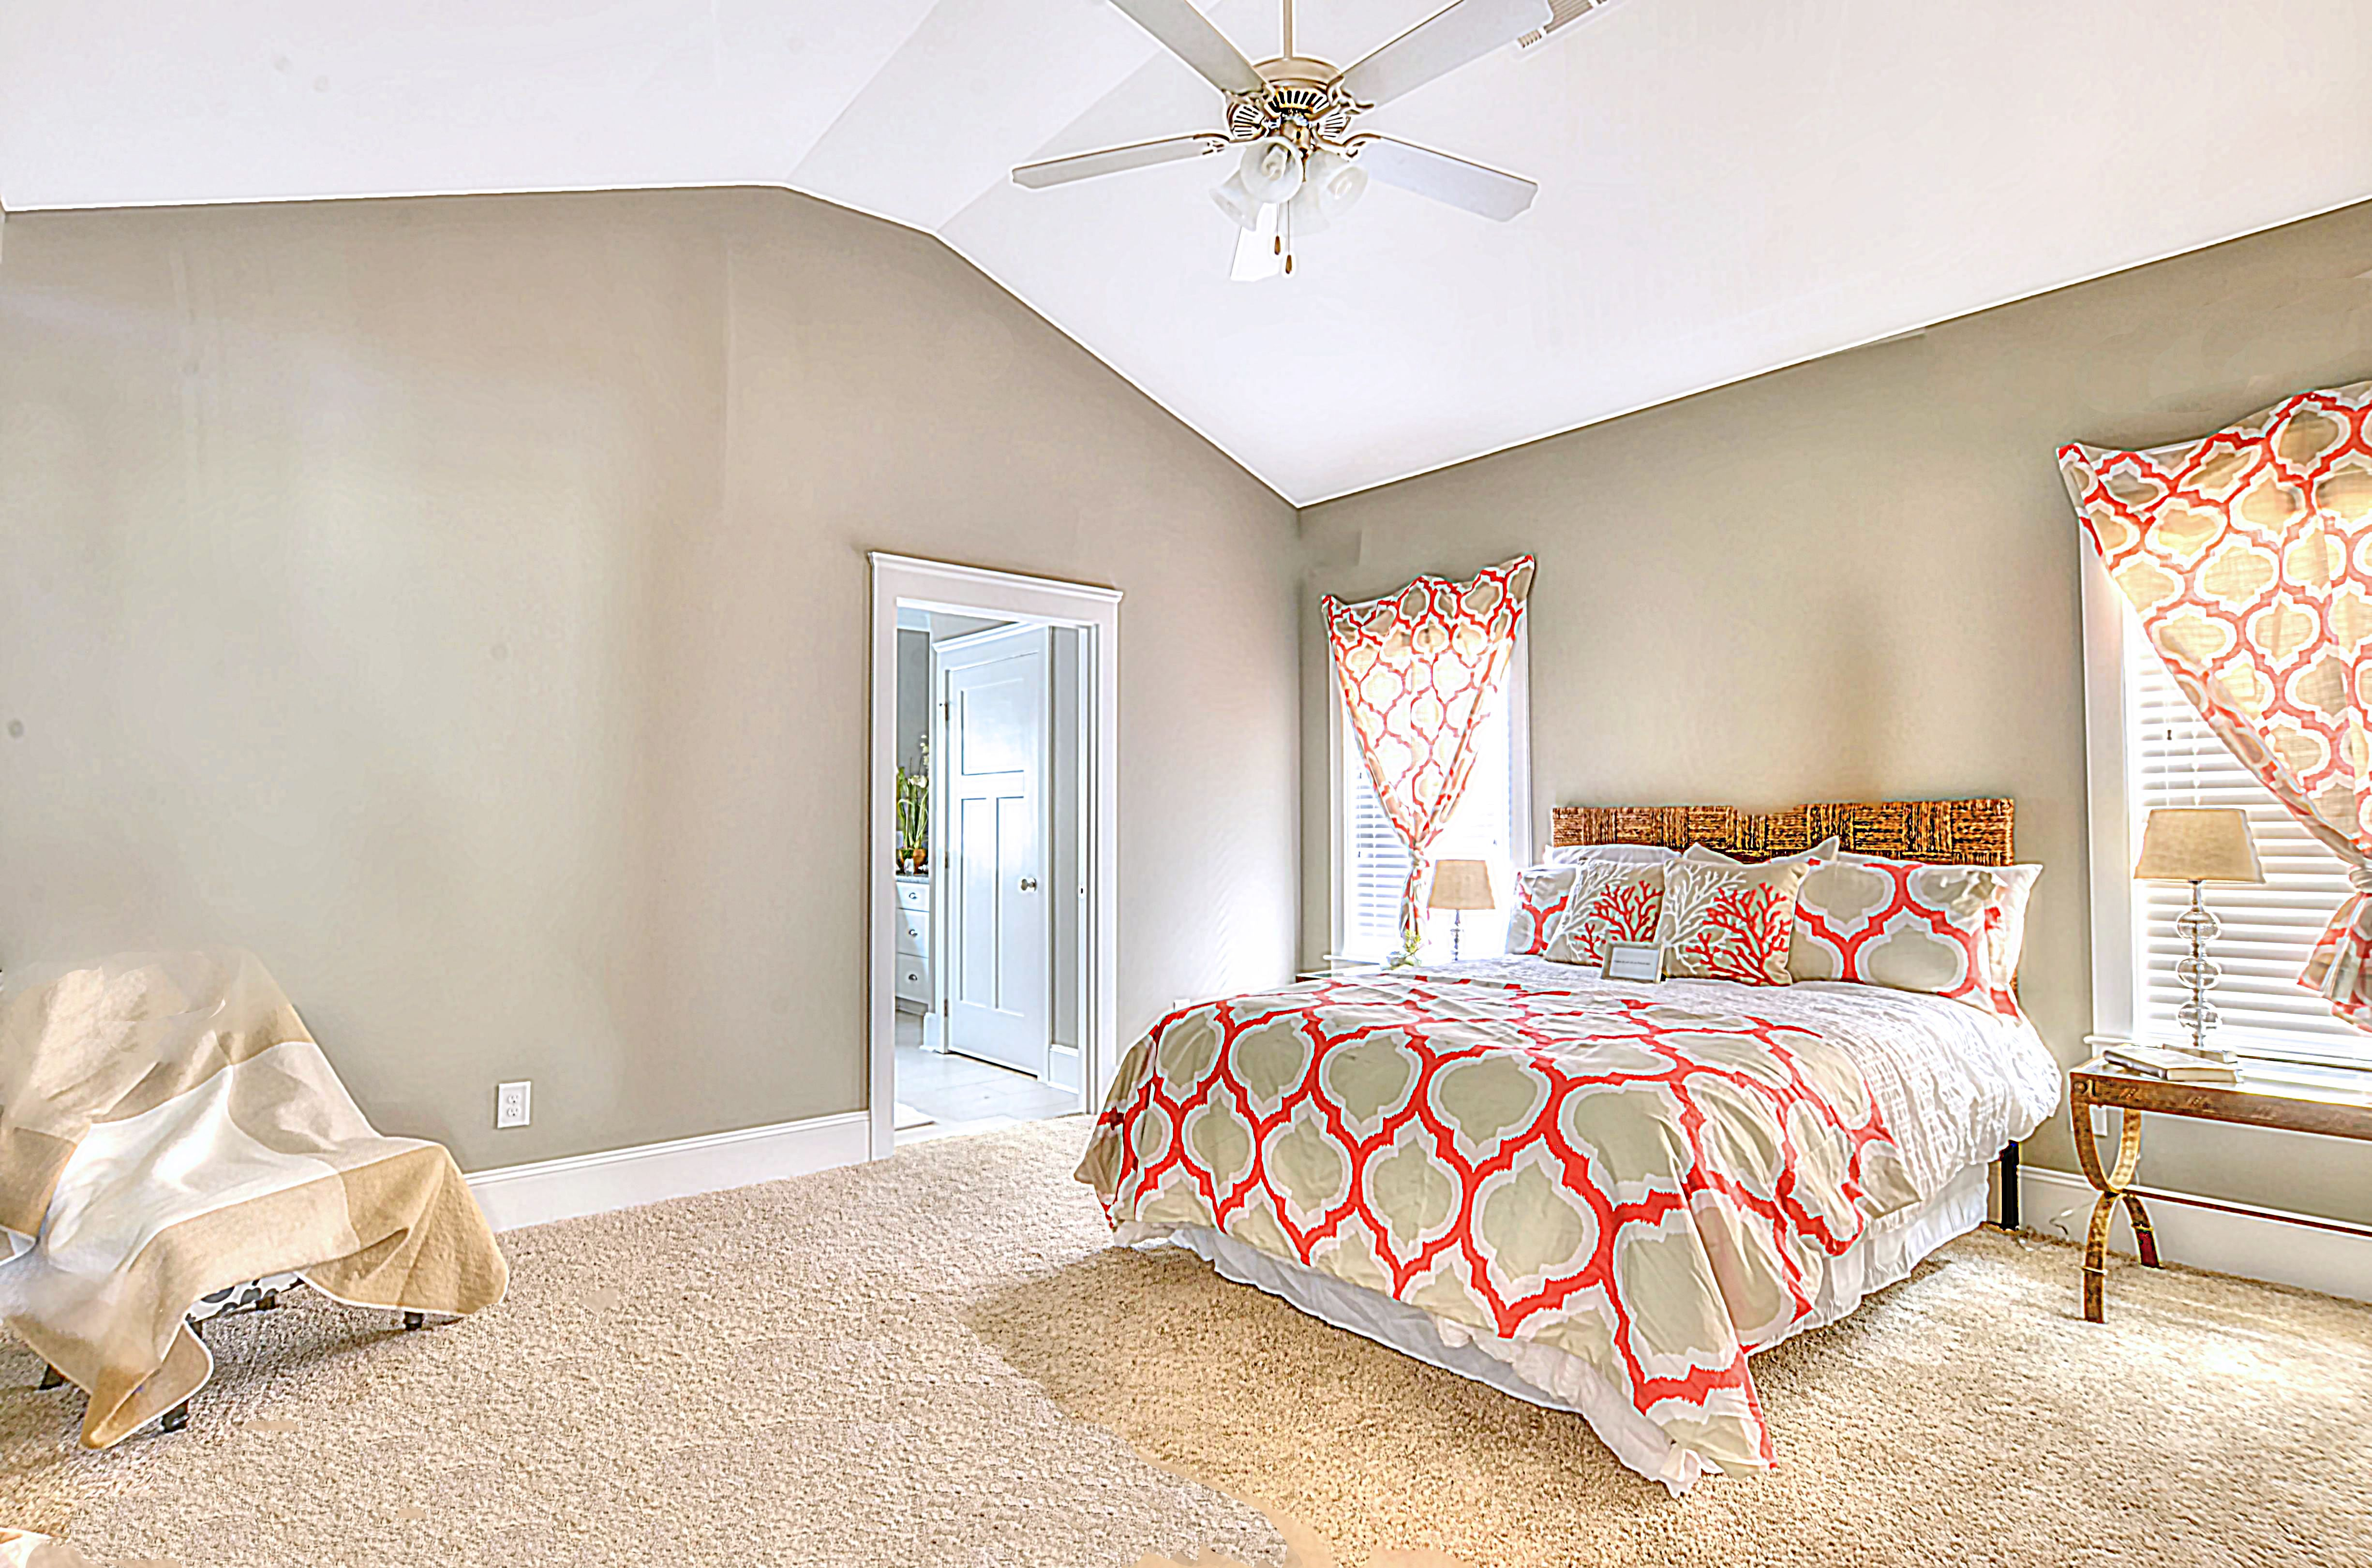 Bedroom featured in The Pearmain By  NRB Properties, LLC in Montgomery, AL